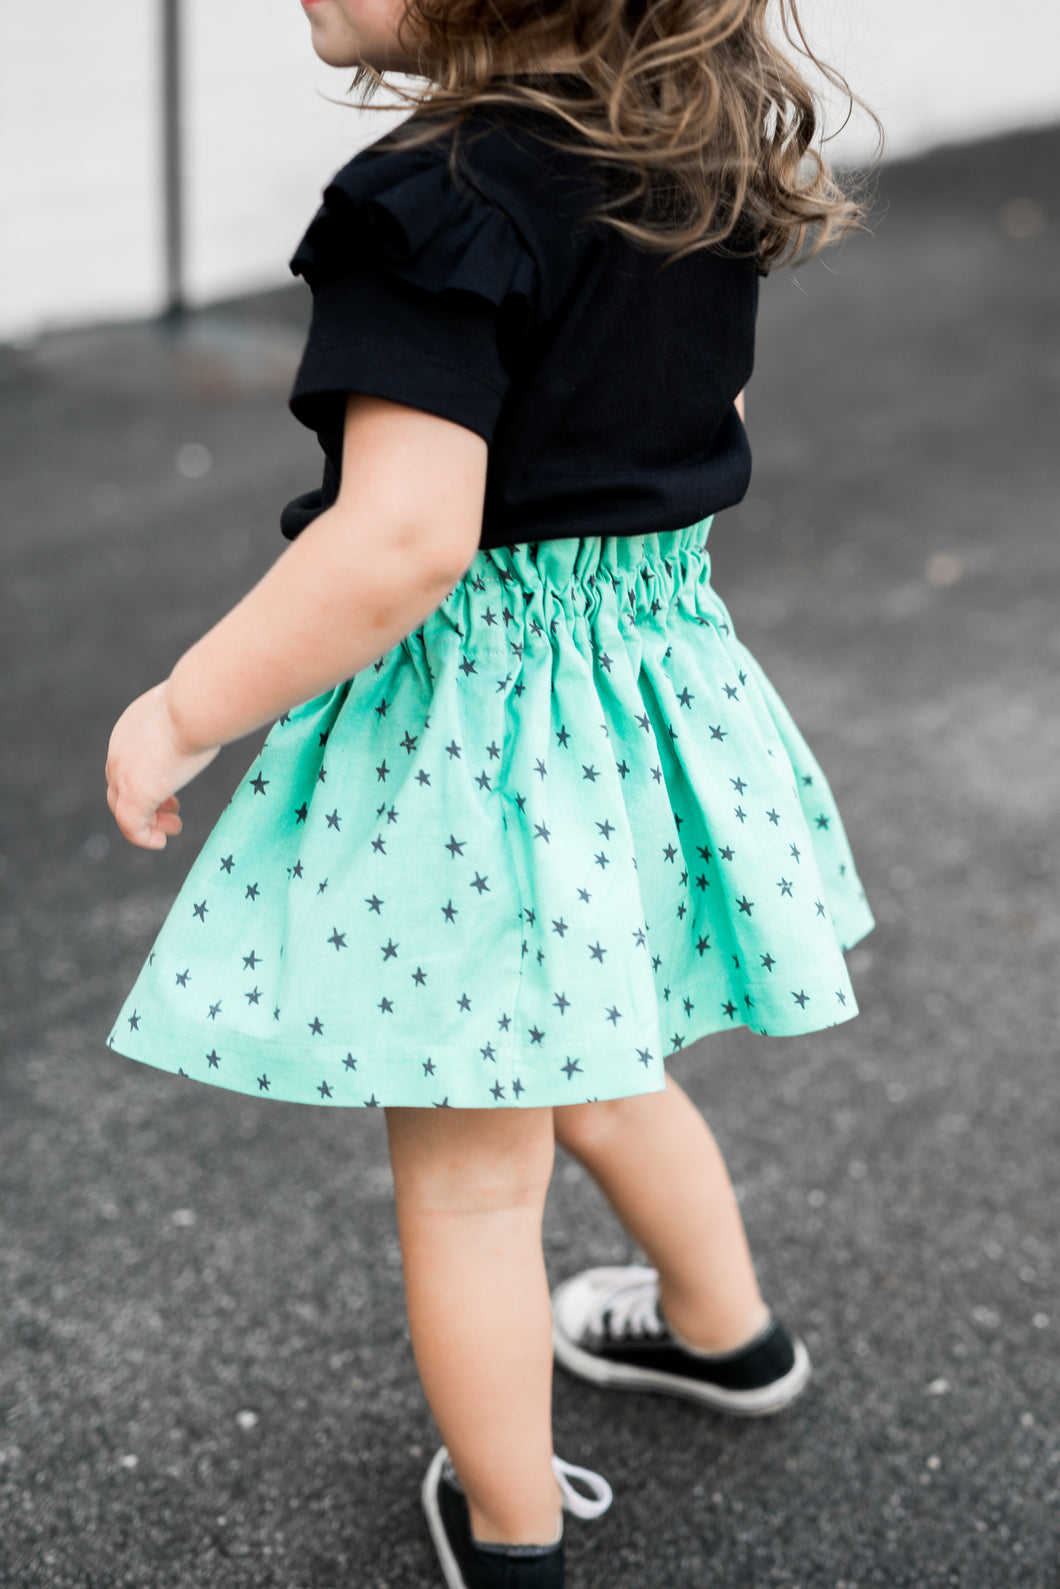 Starry Seaglass Twirl Skirt